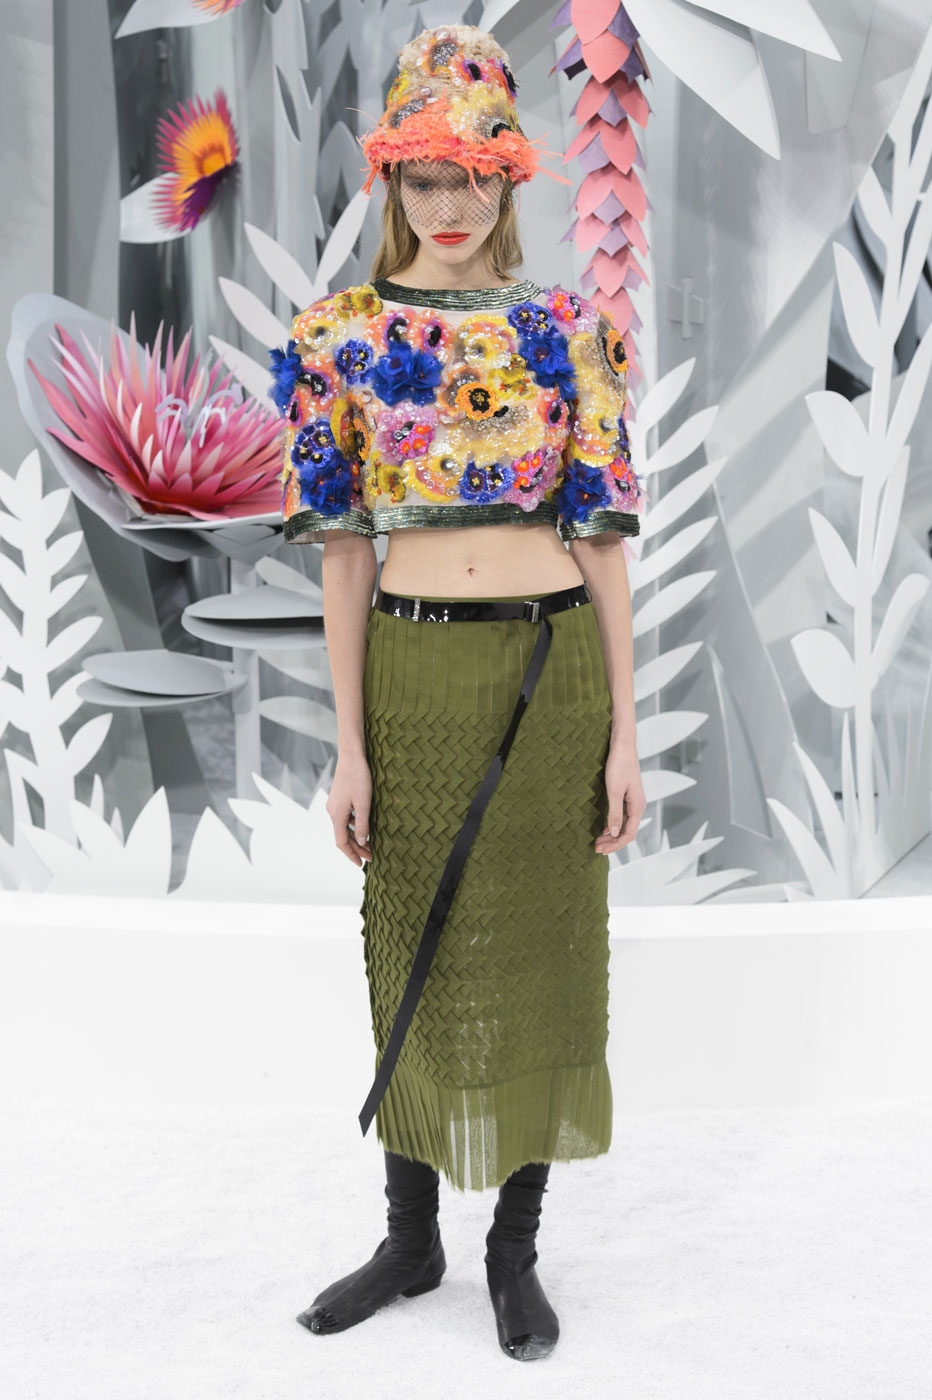 Chanel-fashion-runway-show-haute-couture-paris-spring-summer-2015-the-impression-101